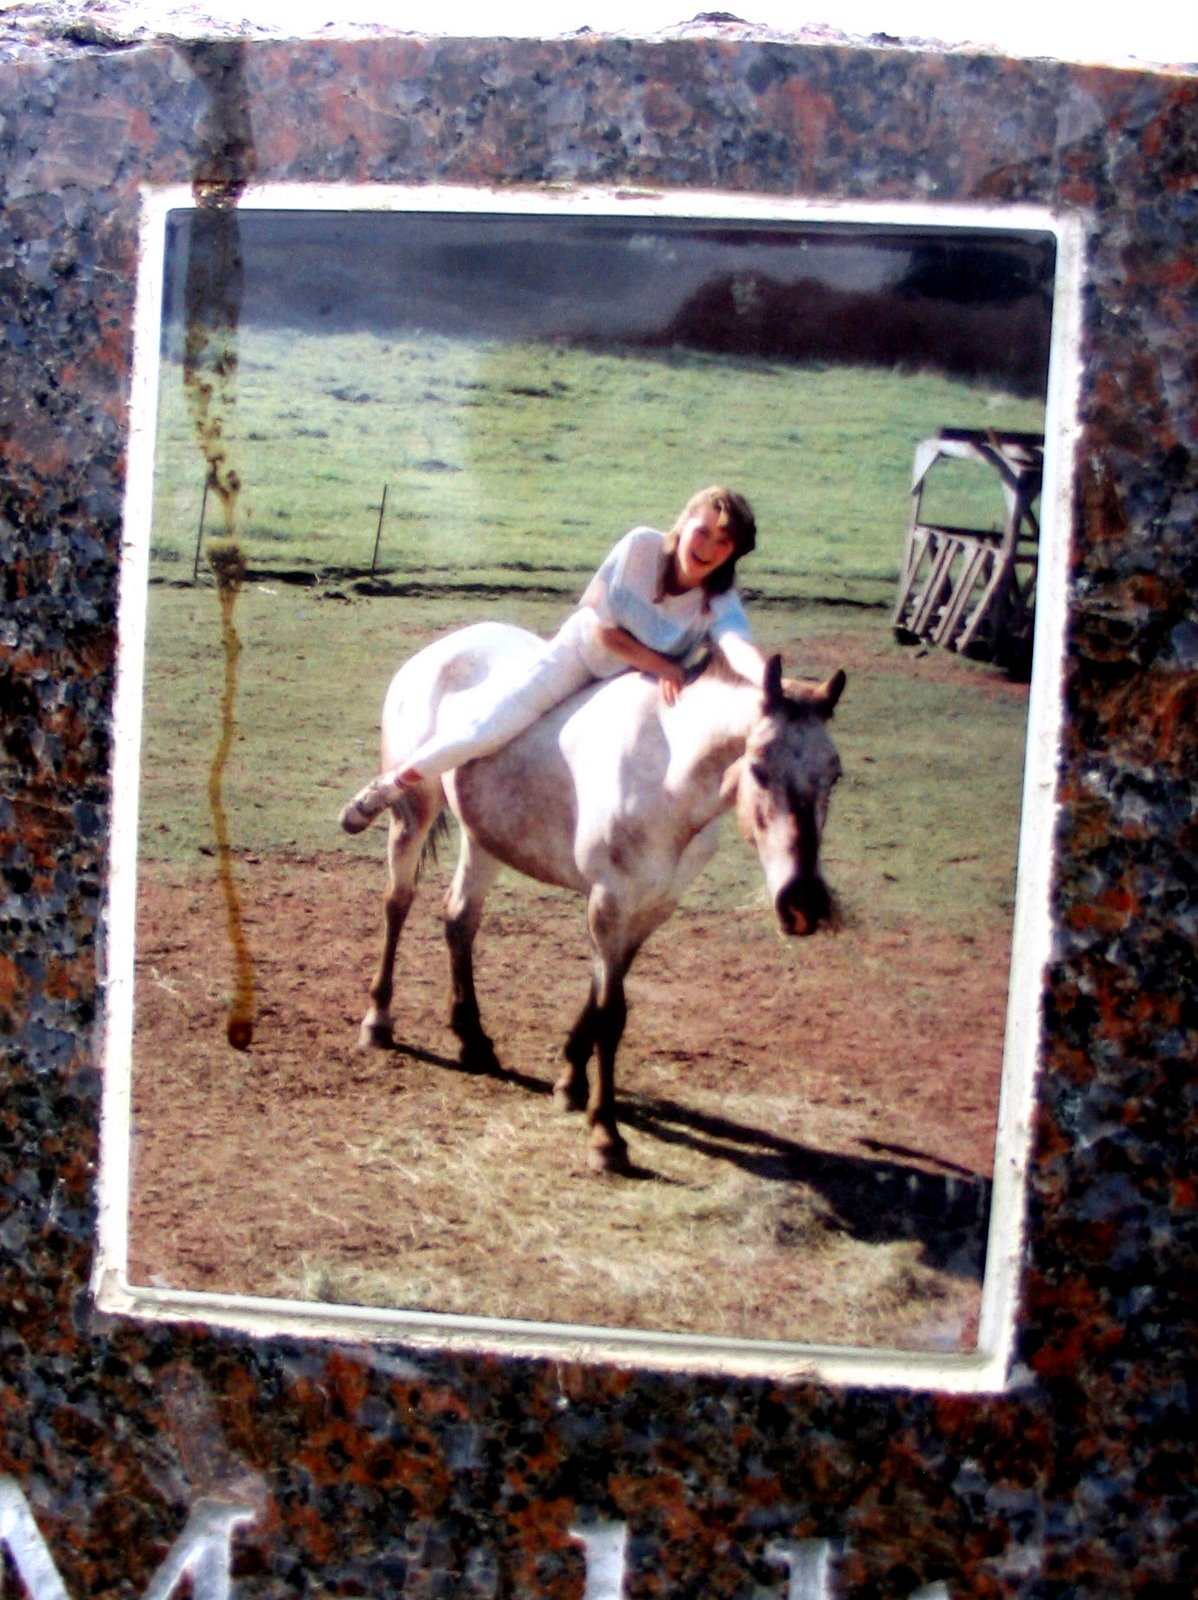 [girl+on+horse+(amboy)]